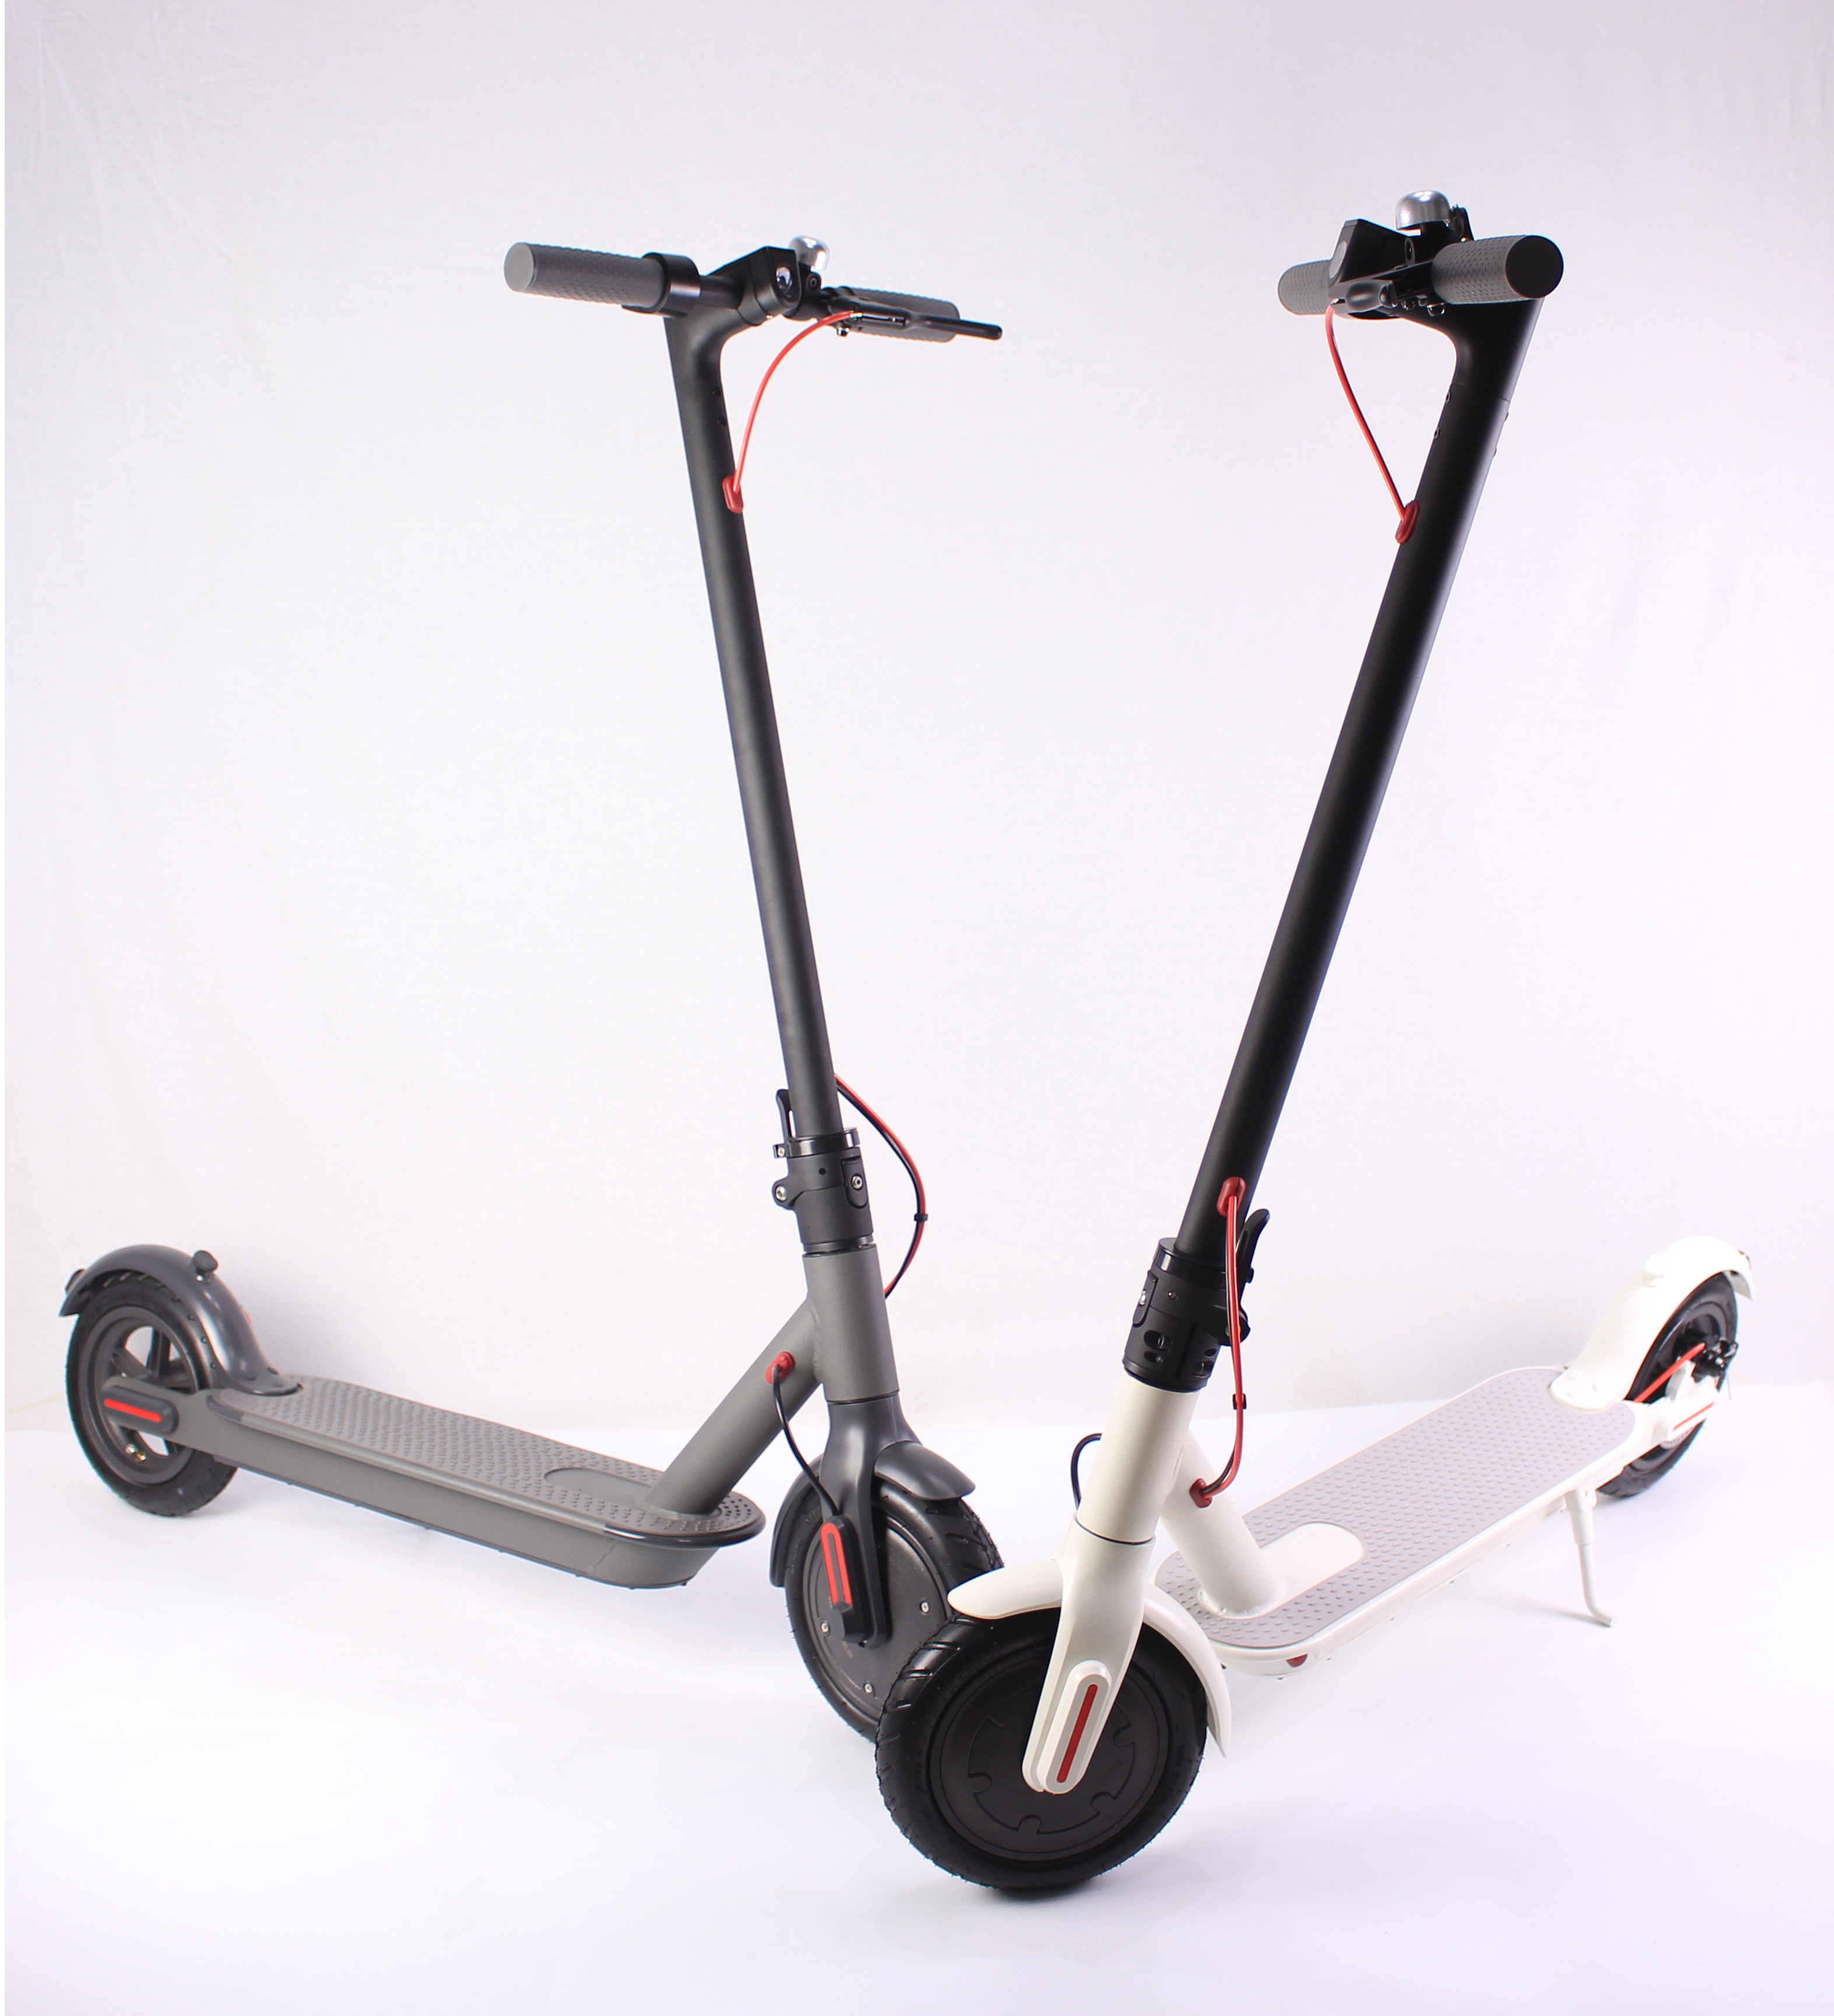 Scooter Electric Two Wheels 350w Motor 1:1 Xiaomi M365 E-scooter City  Scooter With App - Buy Electric Scooter With App,Folding Scooter For